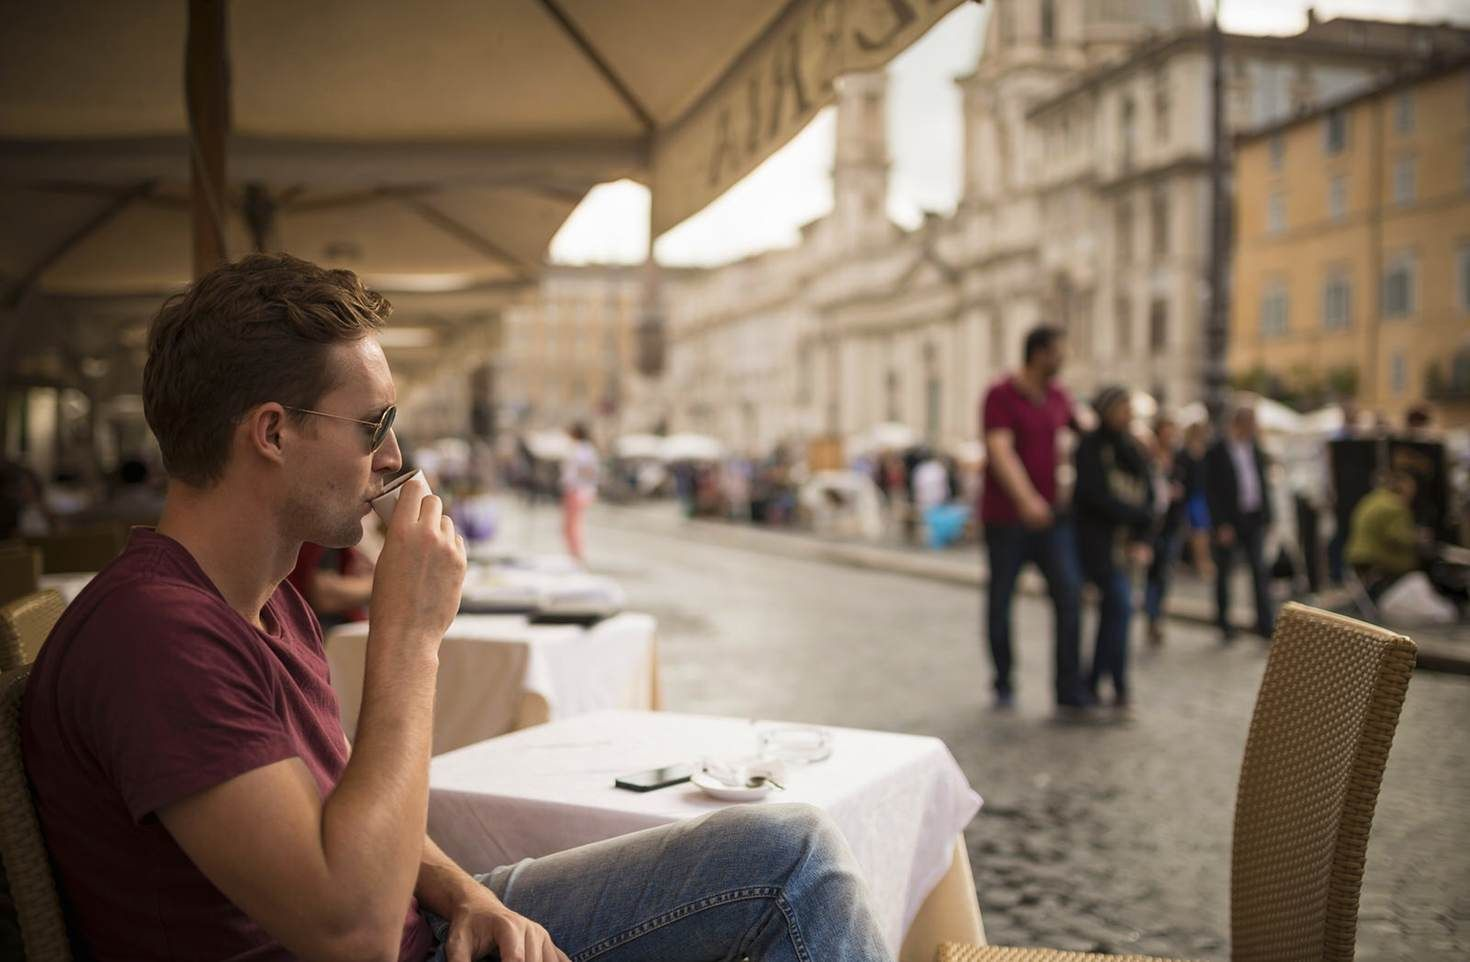 Taking a break to watch the world go by in Rome's Piazza Navona